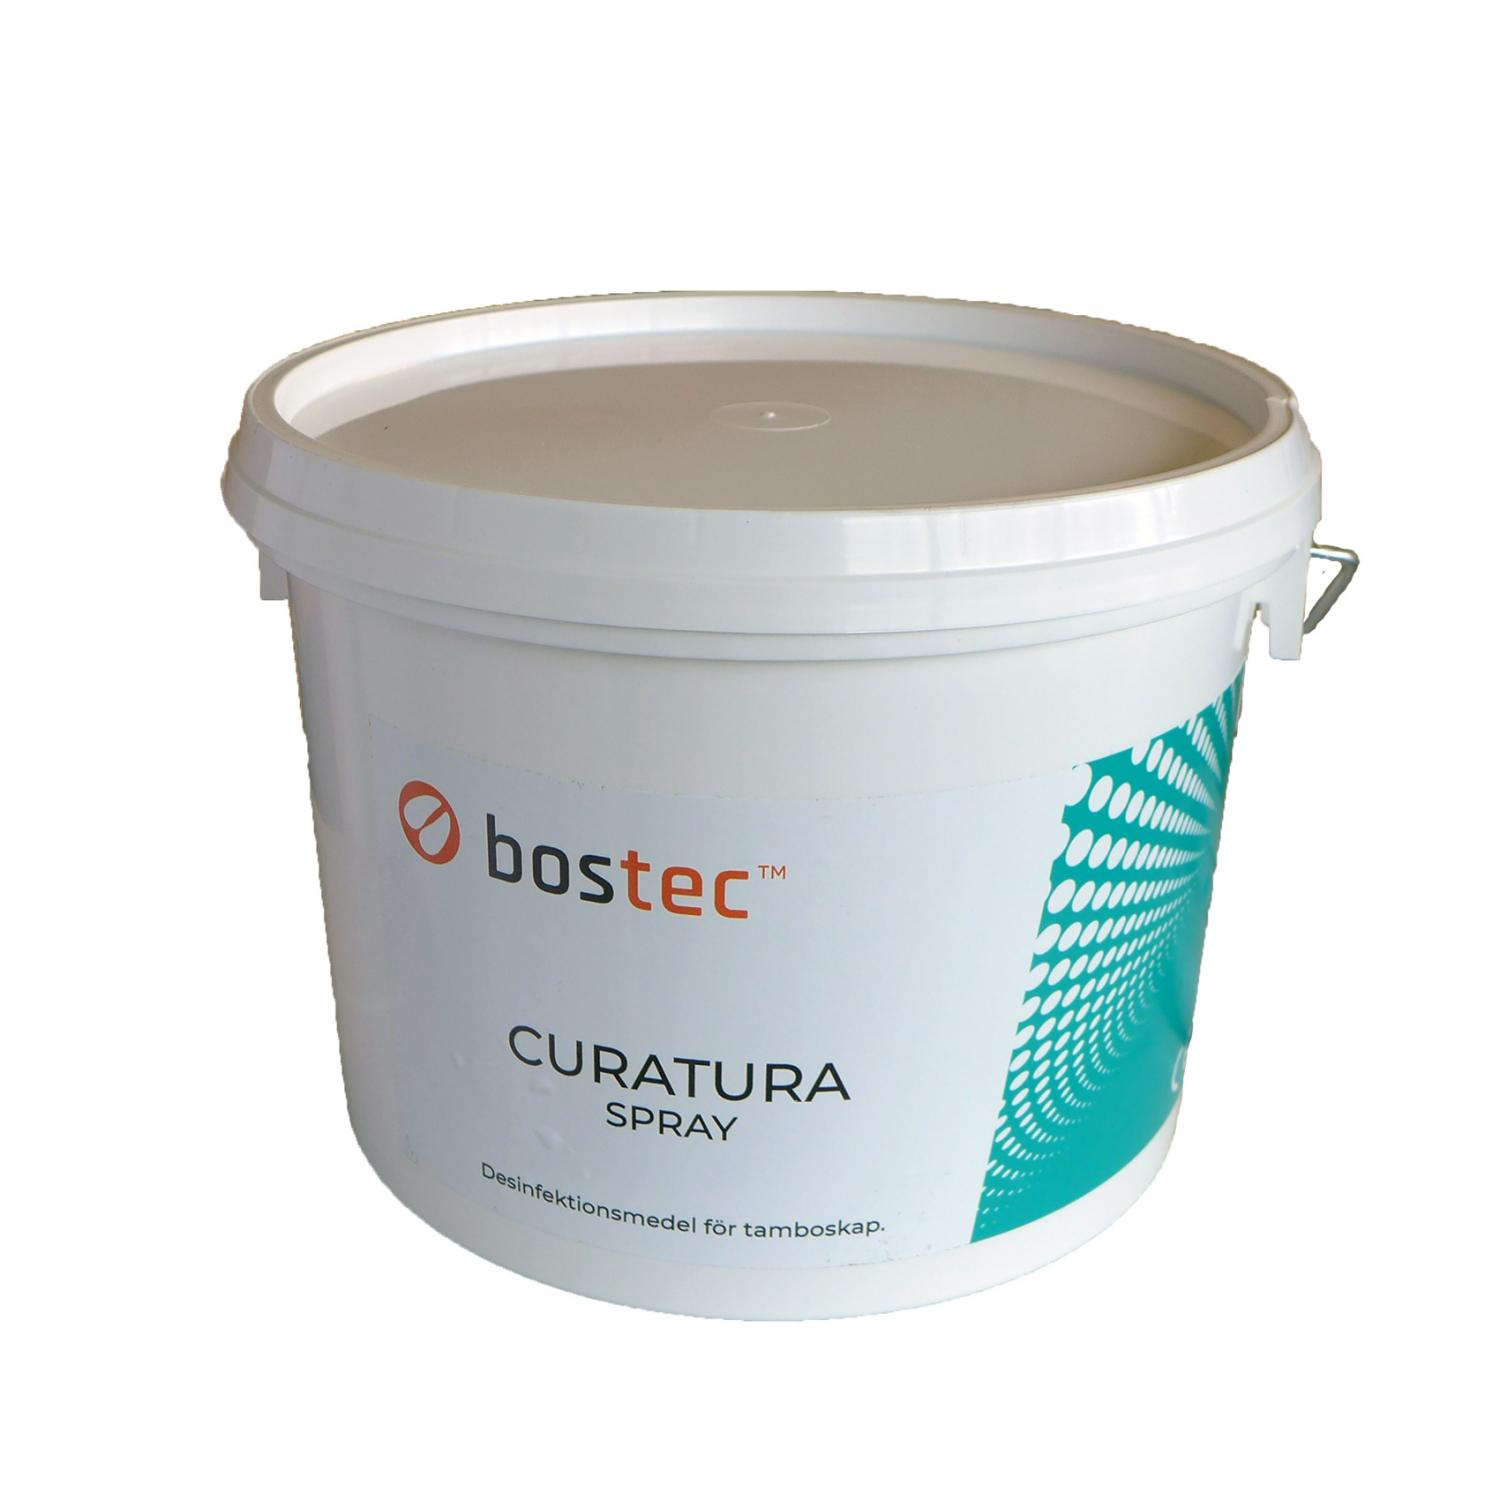 Bostec™ Curatura Spray